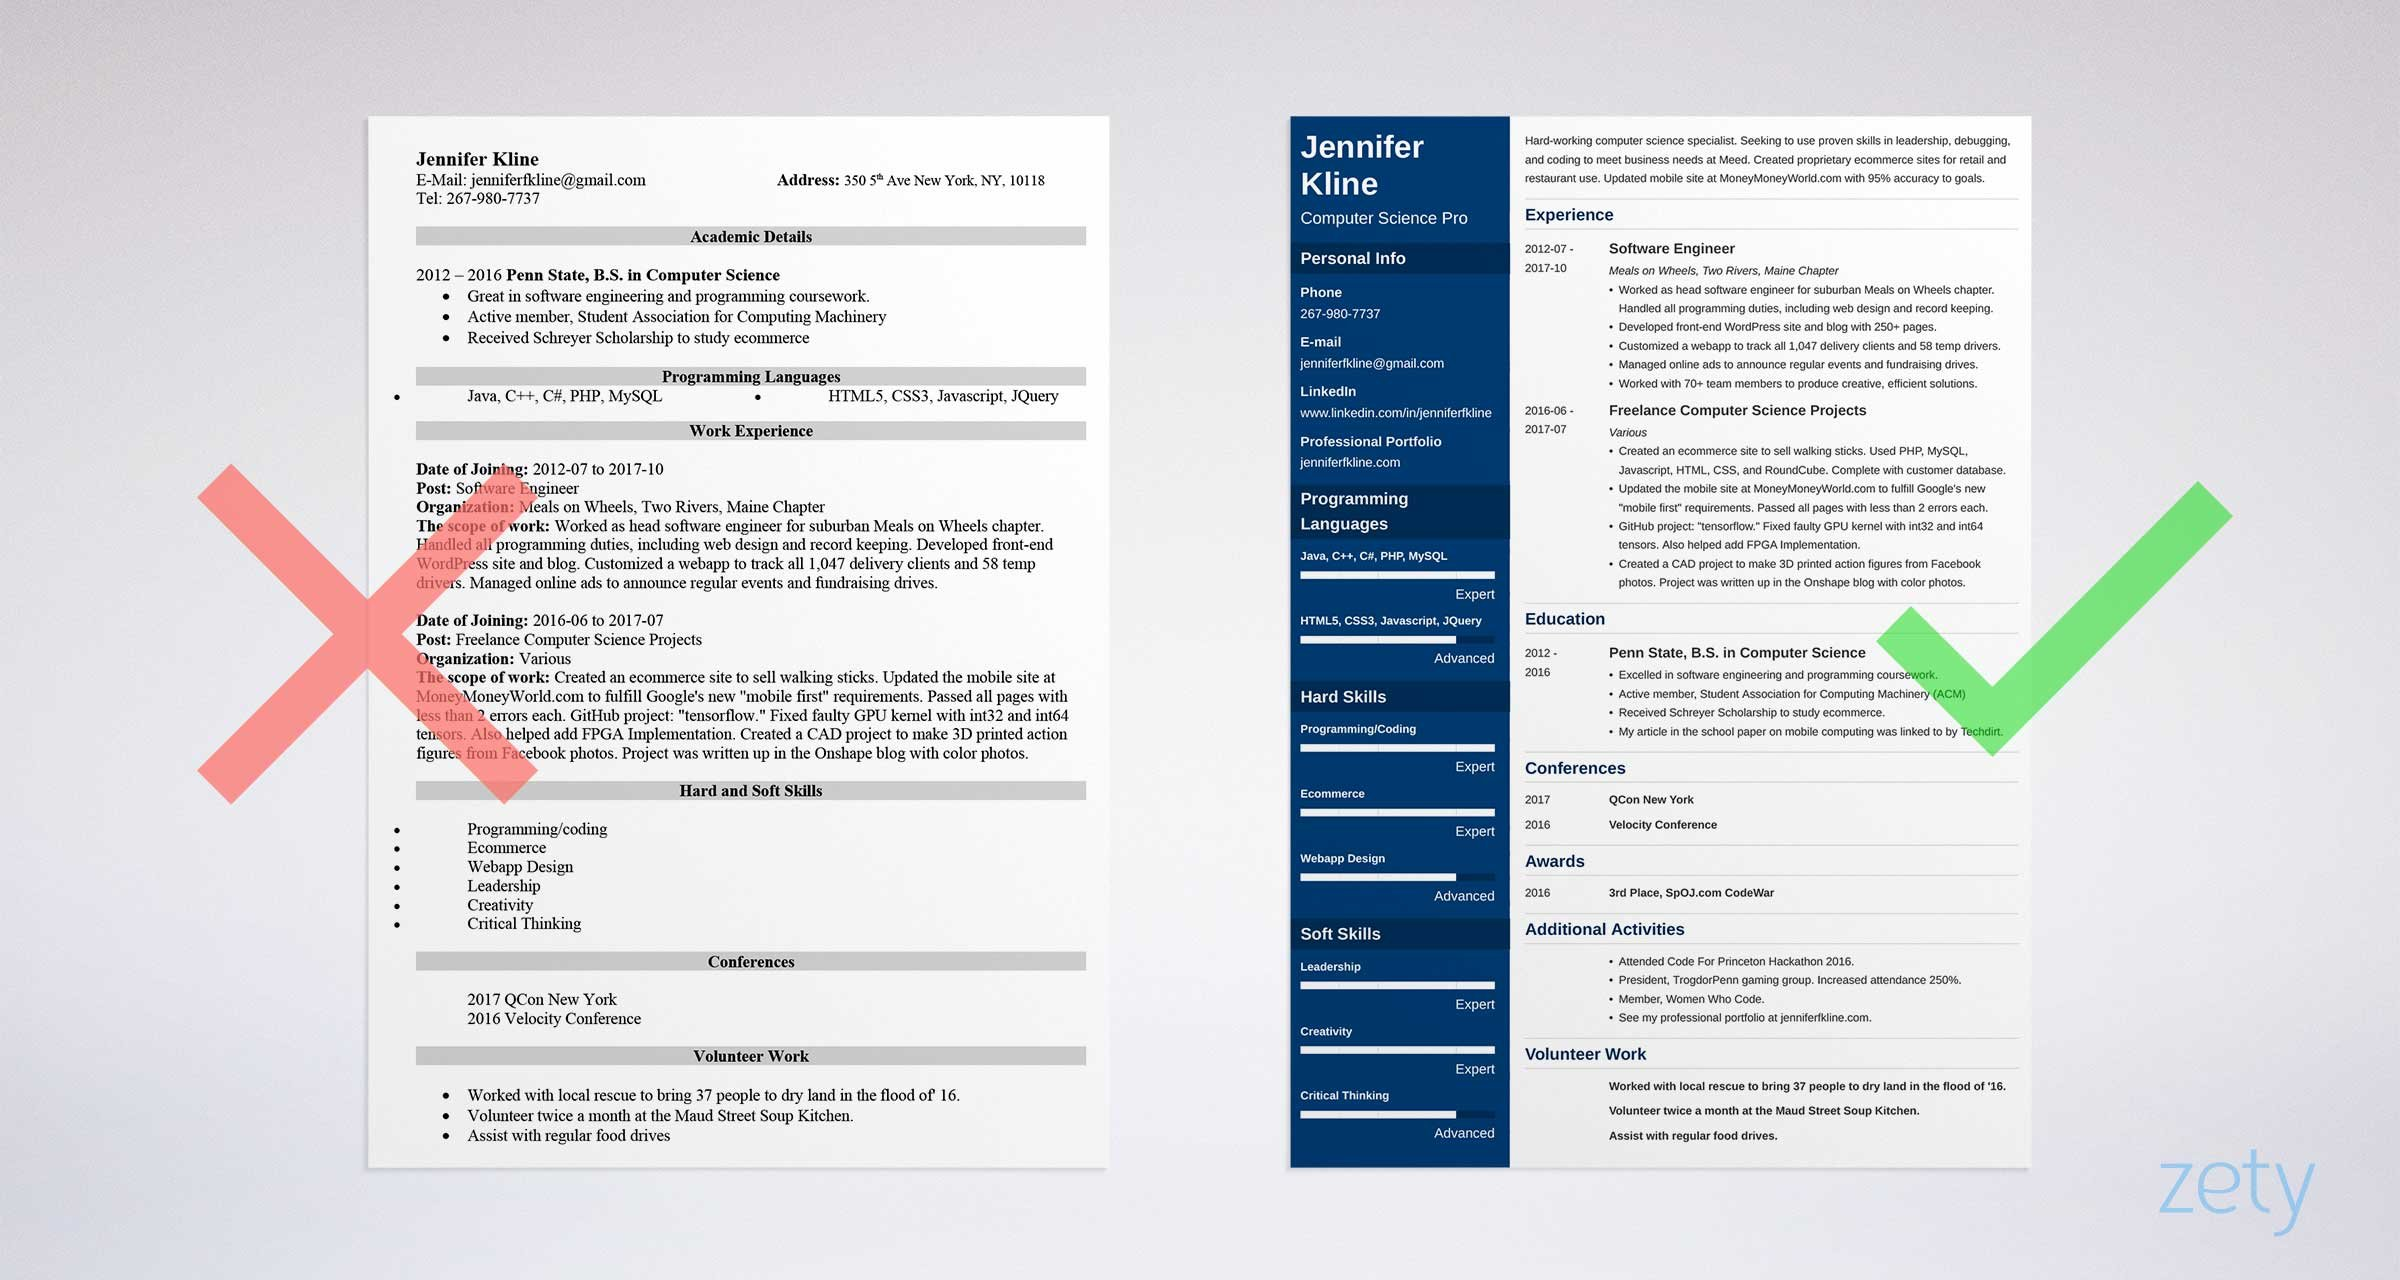 Volunteer work examples for resume